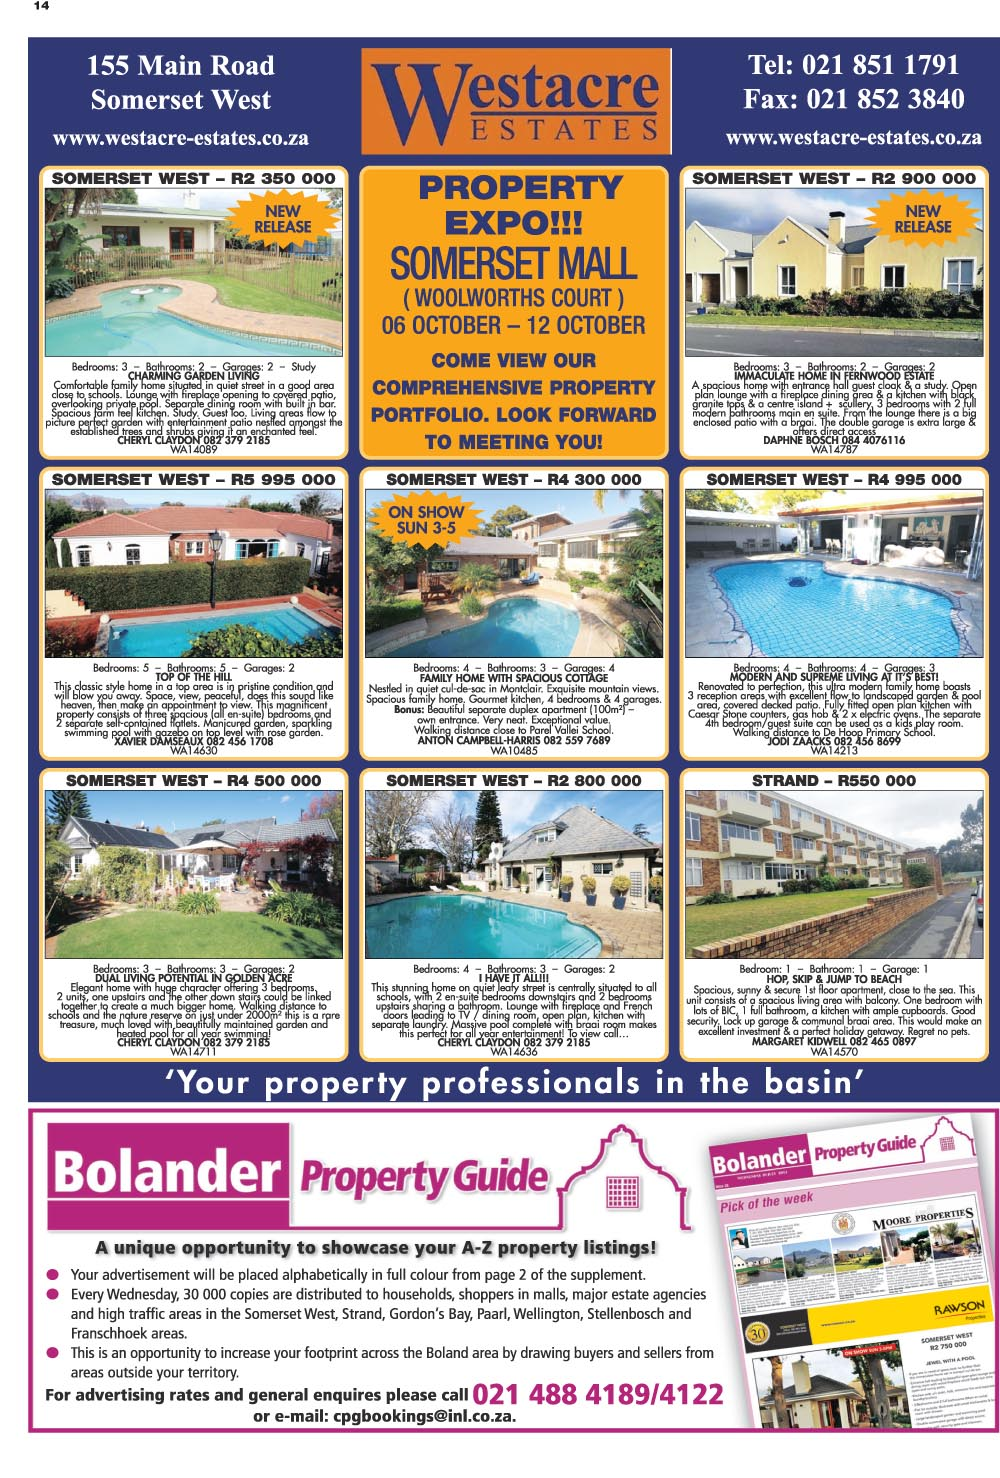 You are browsing images from the article: Property Selection-October 07 2015